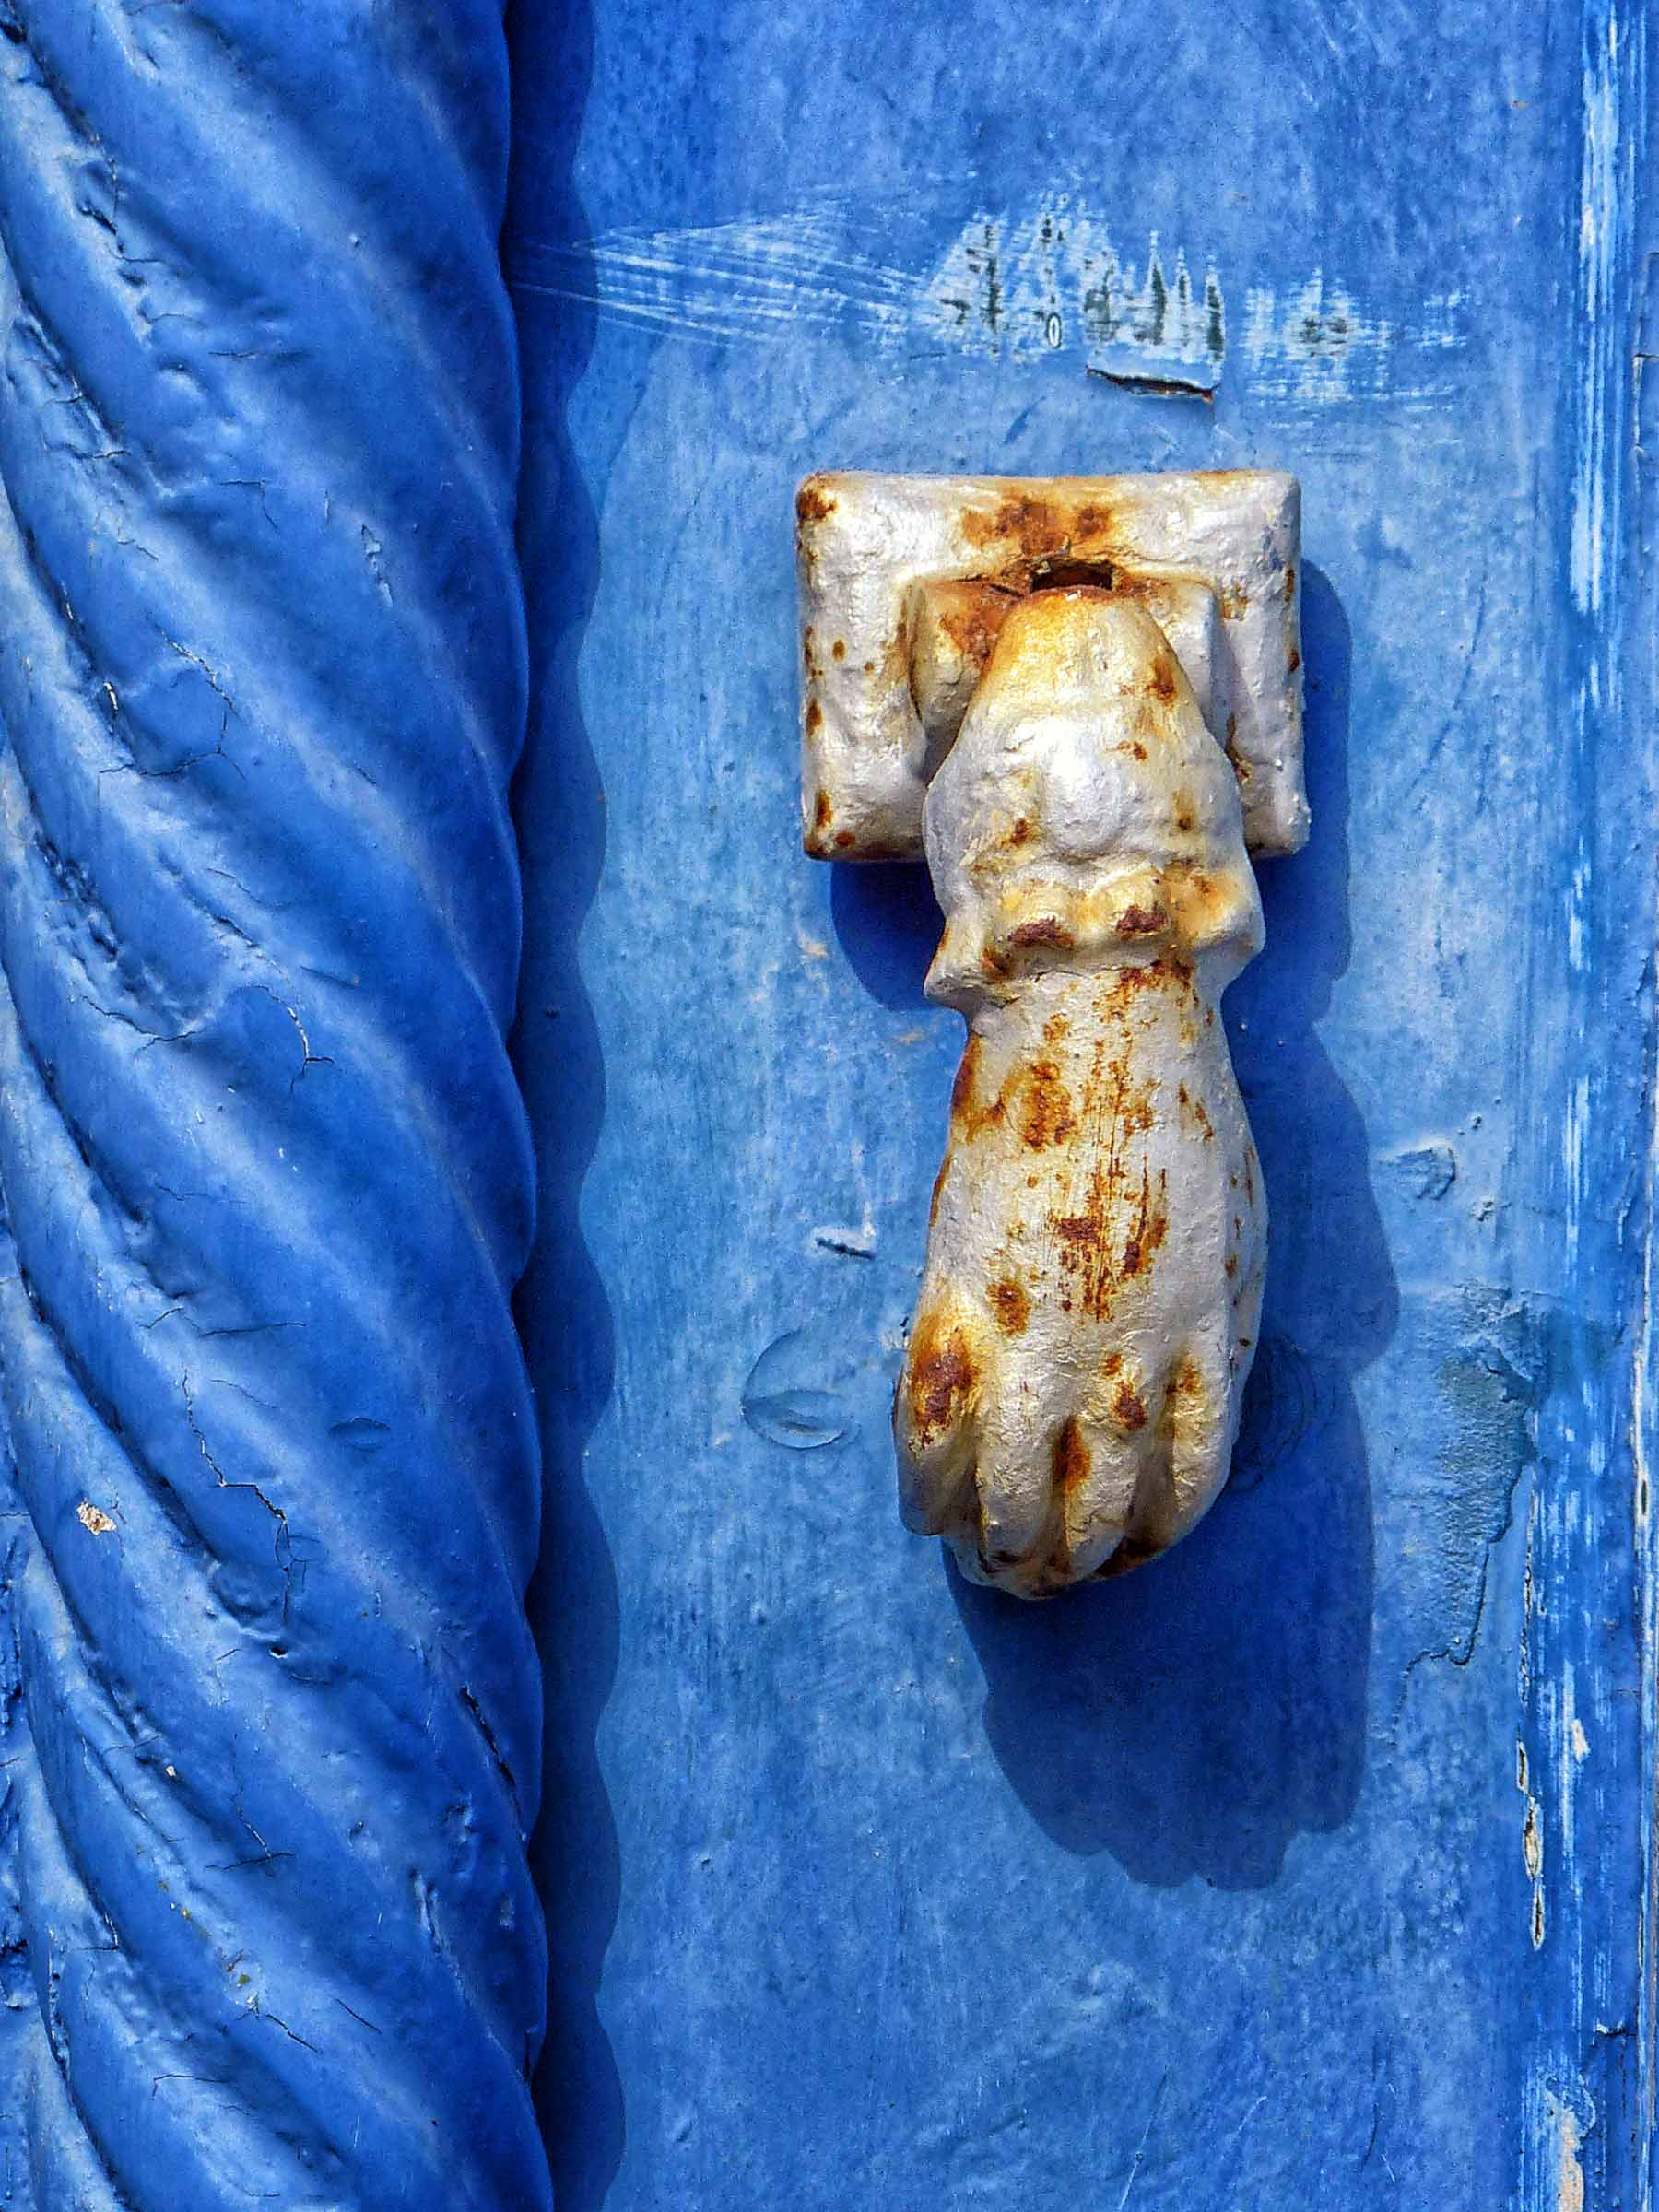 Detail of blue painted door with hand-shaped knocker